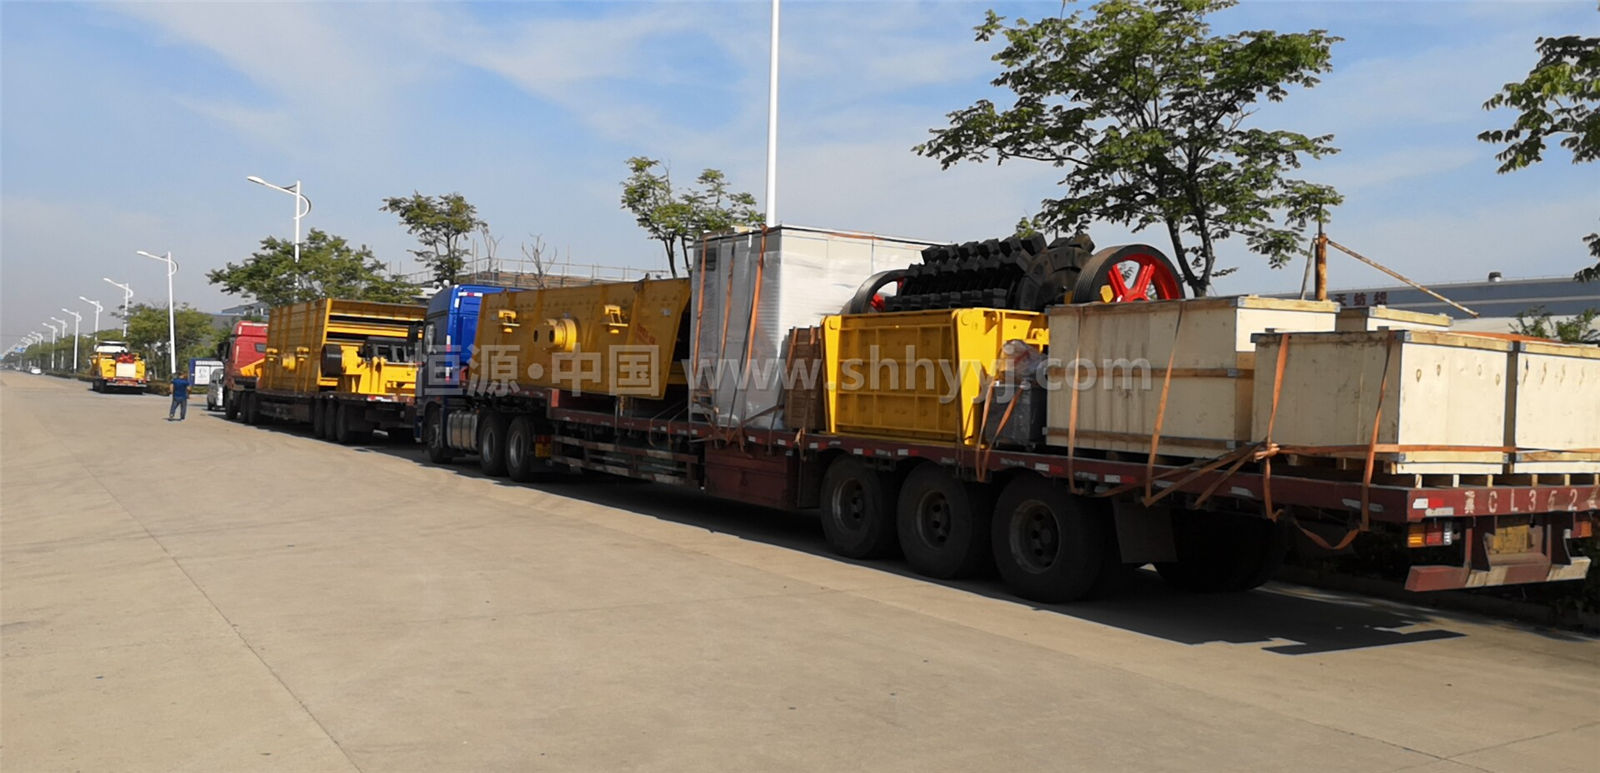 Livestock review of Liaoning sand and gravel production line